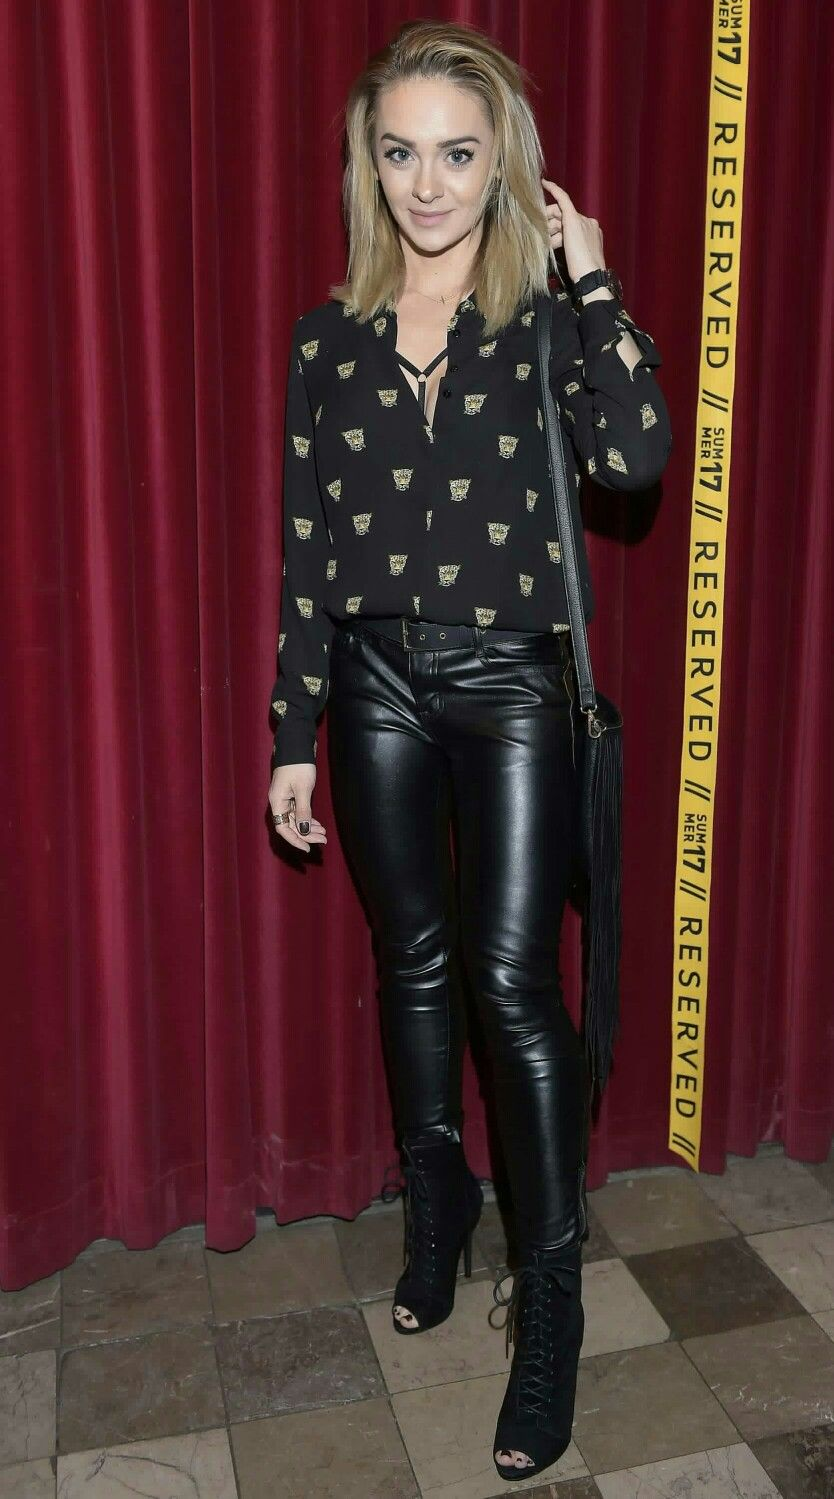 Sylwia-Nowak blonde in leather pants